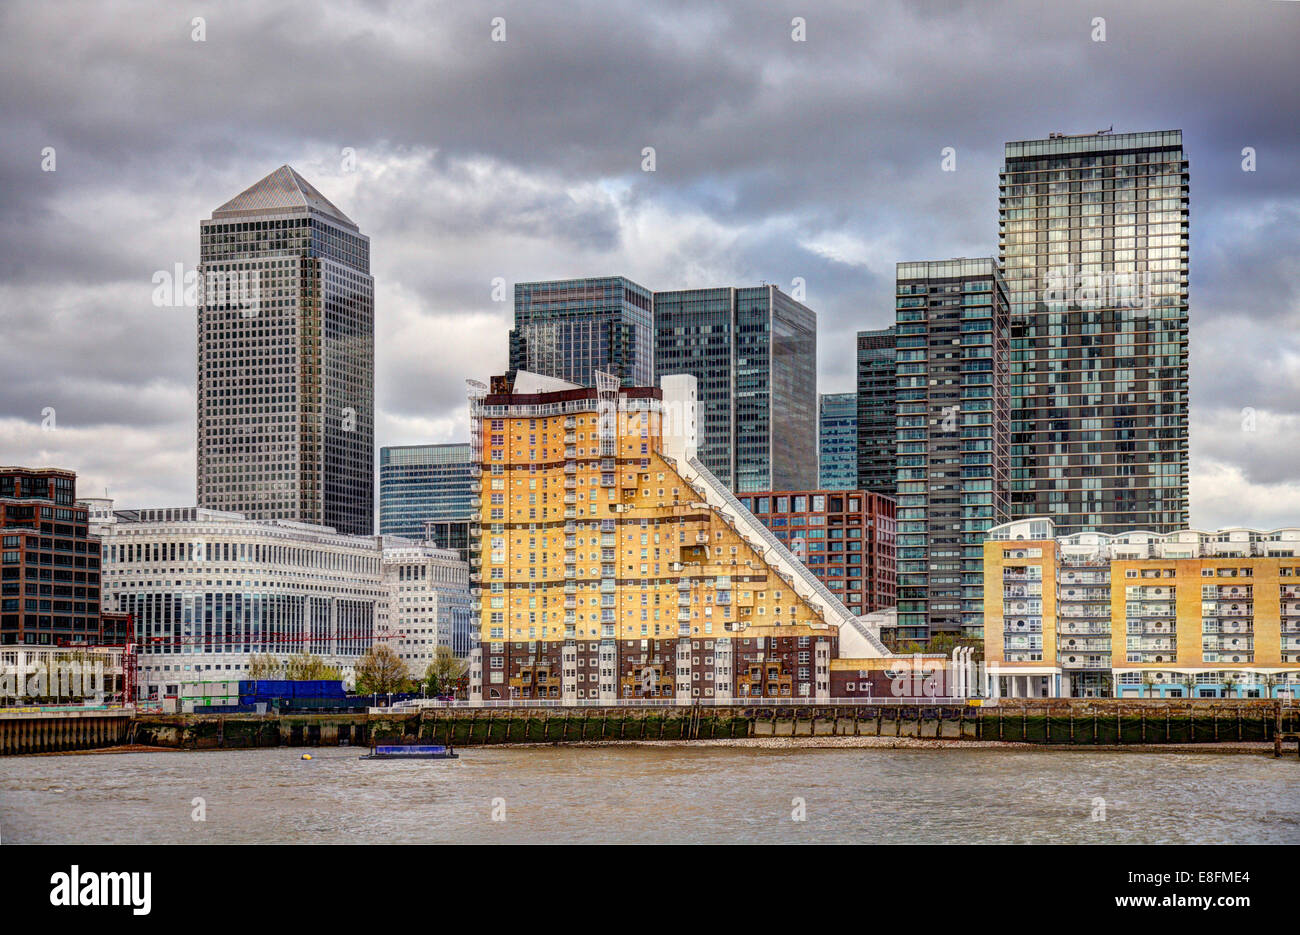 United Kingdom, London, View of Canary Wharf - Stock Image